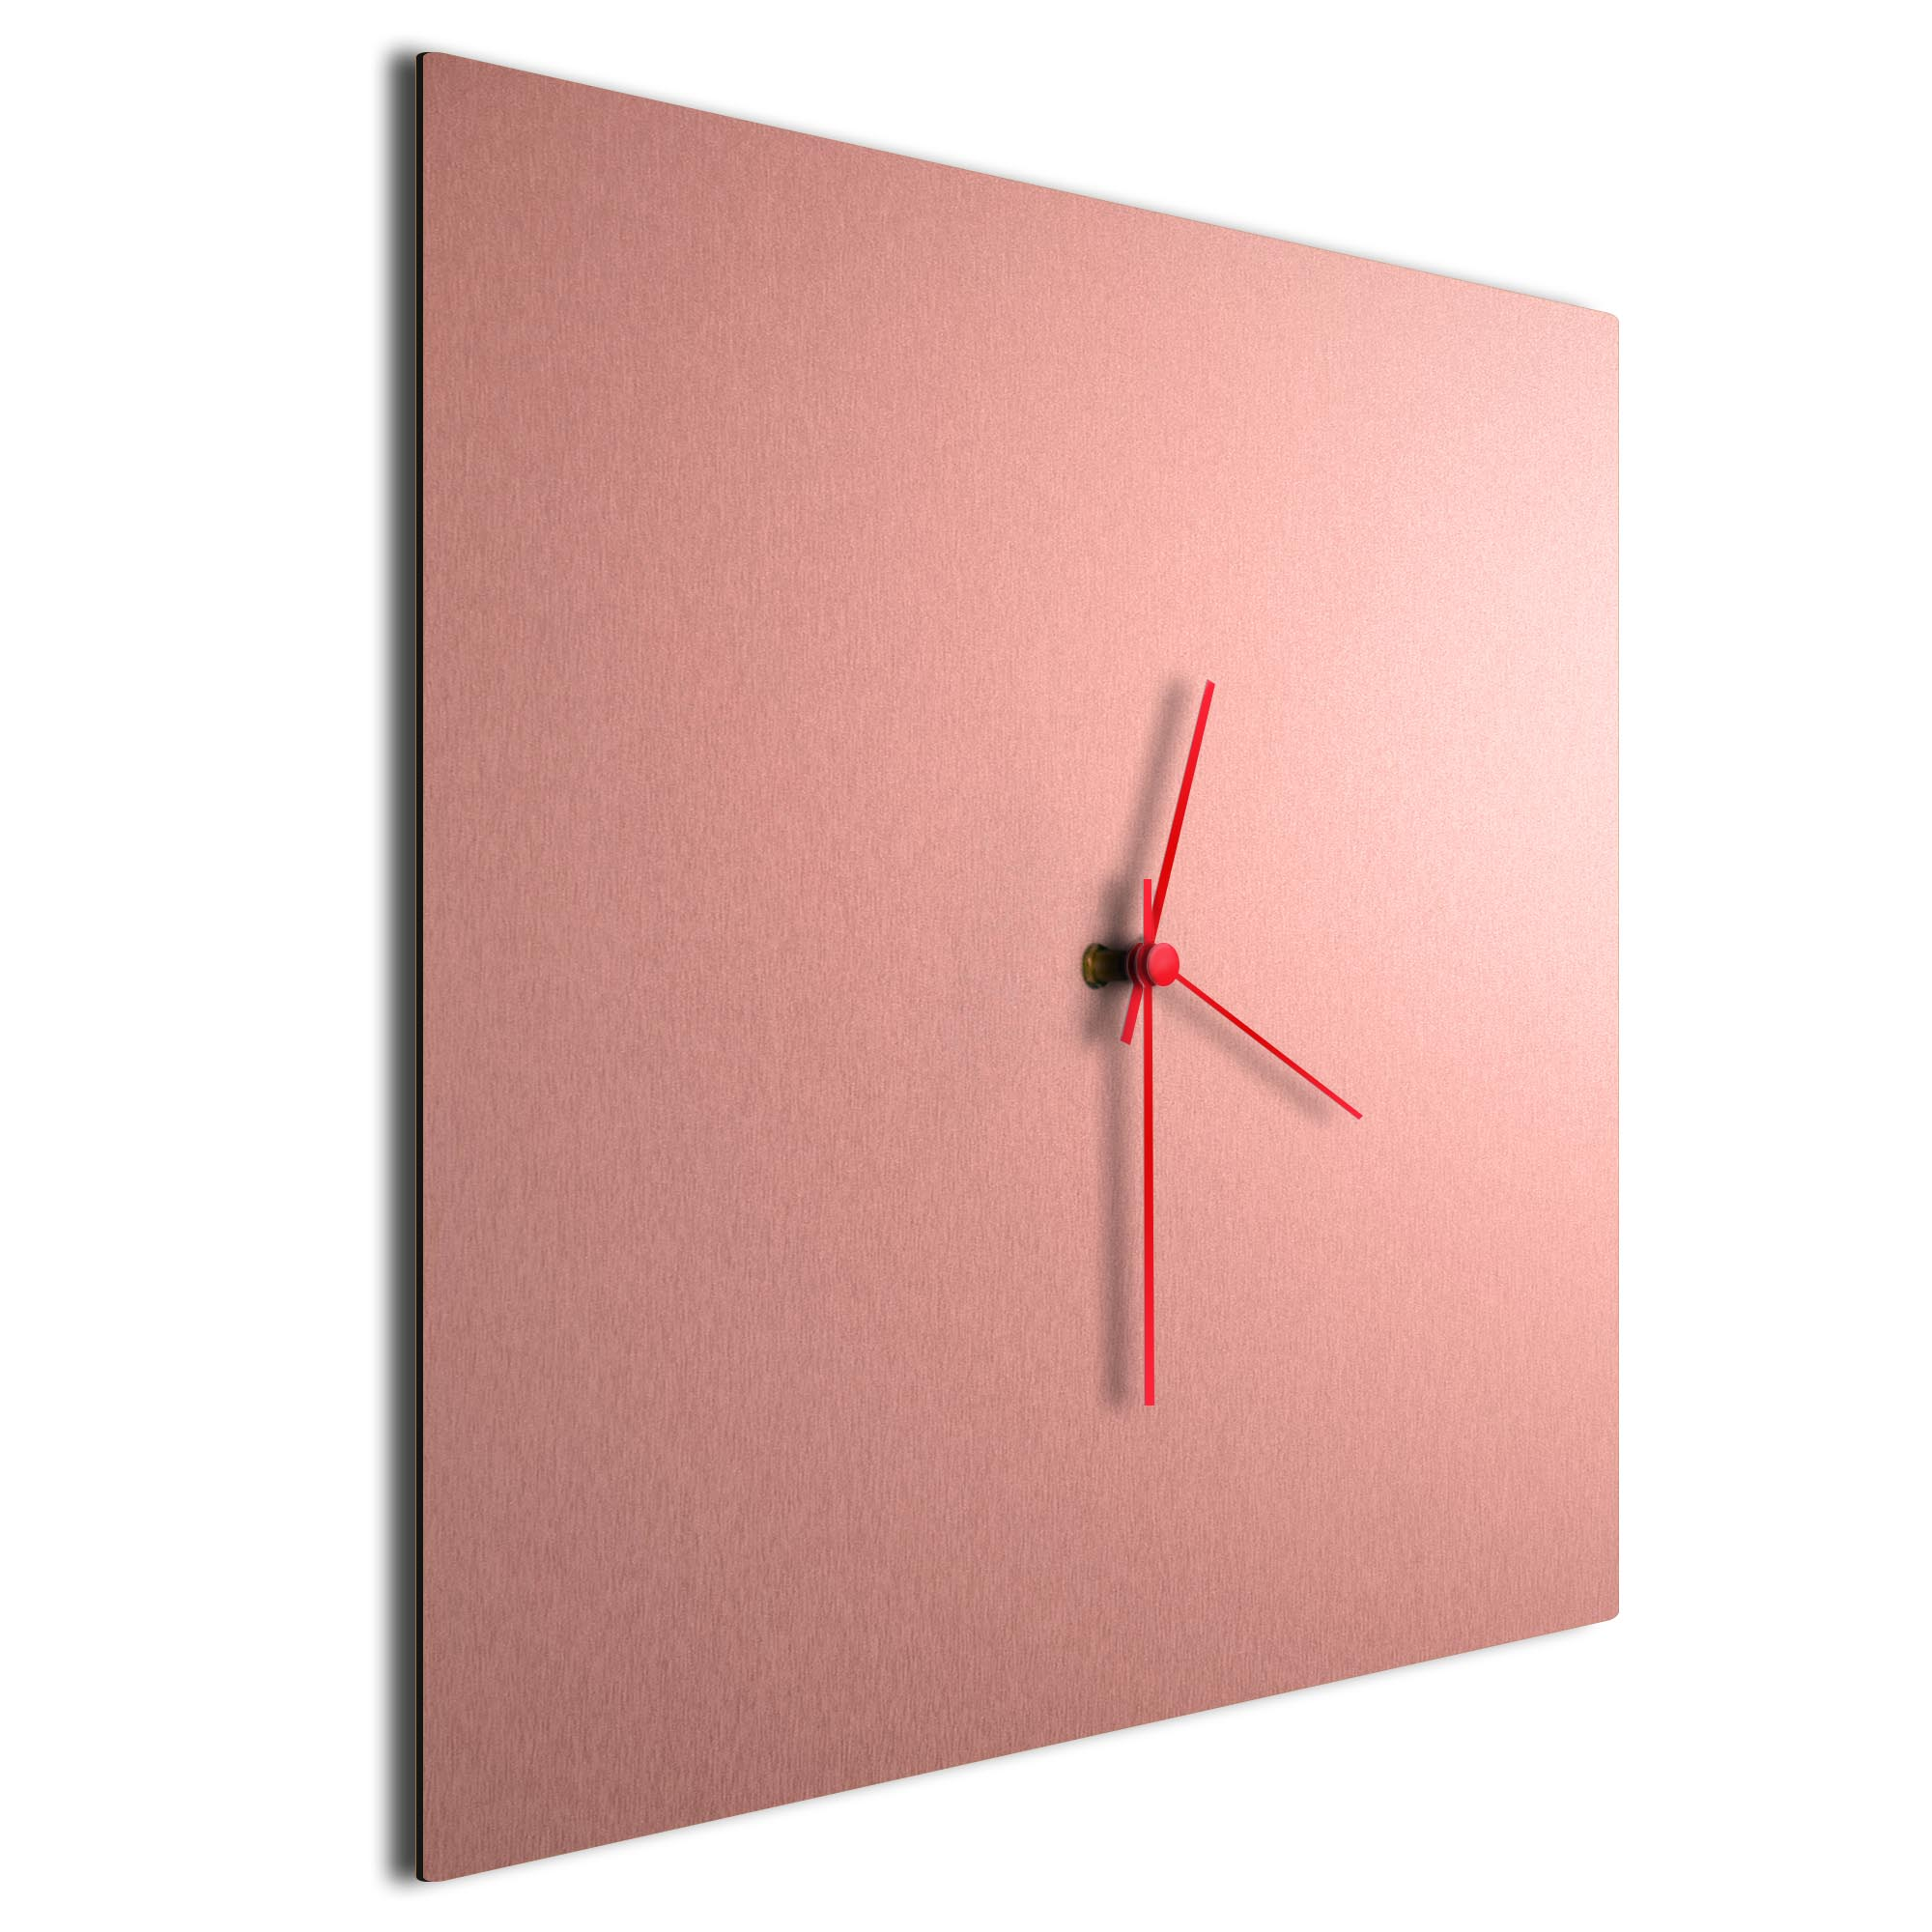 Coppersmith Square Clock Large Red - Image 2